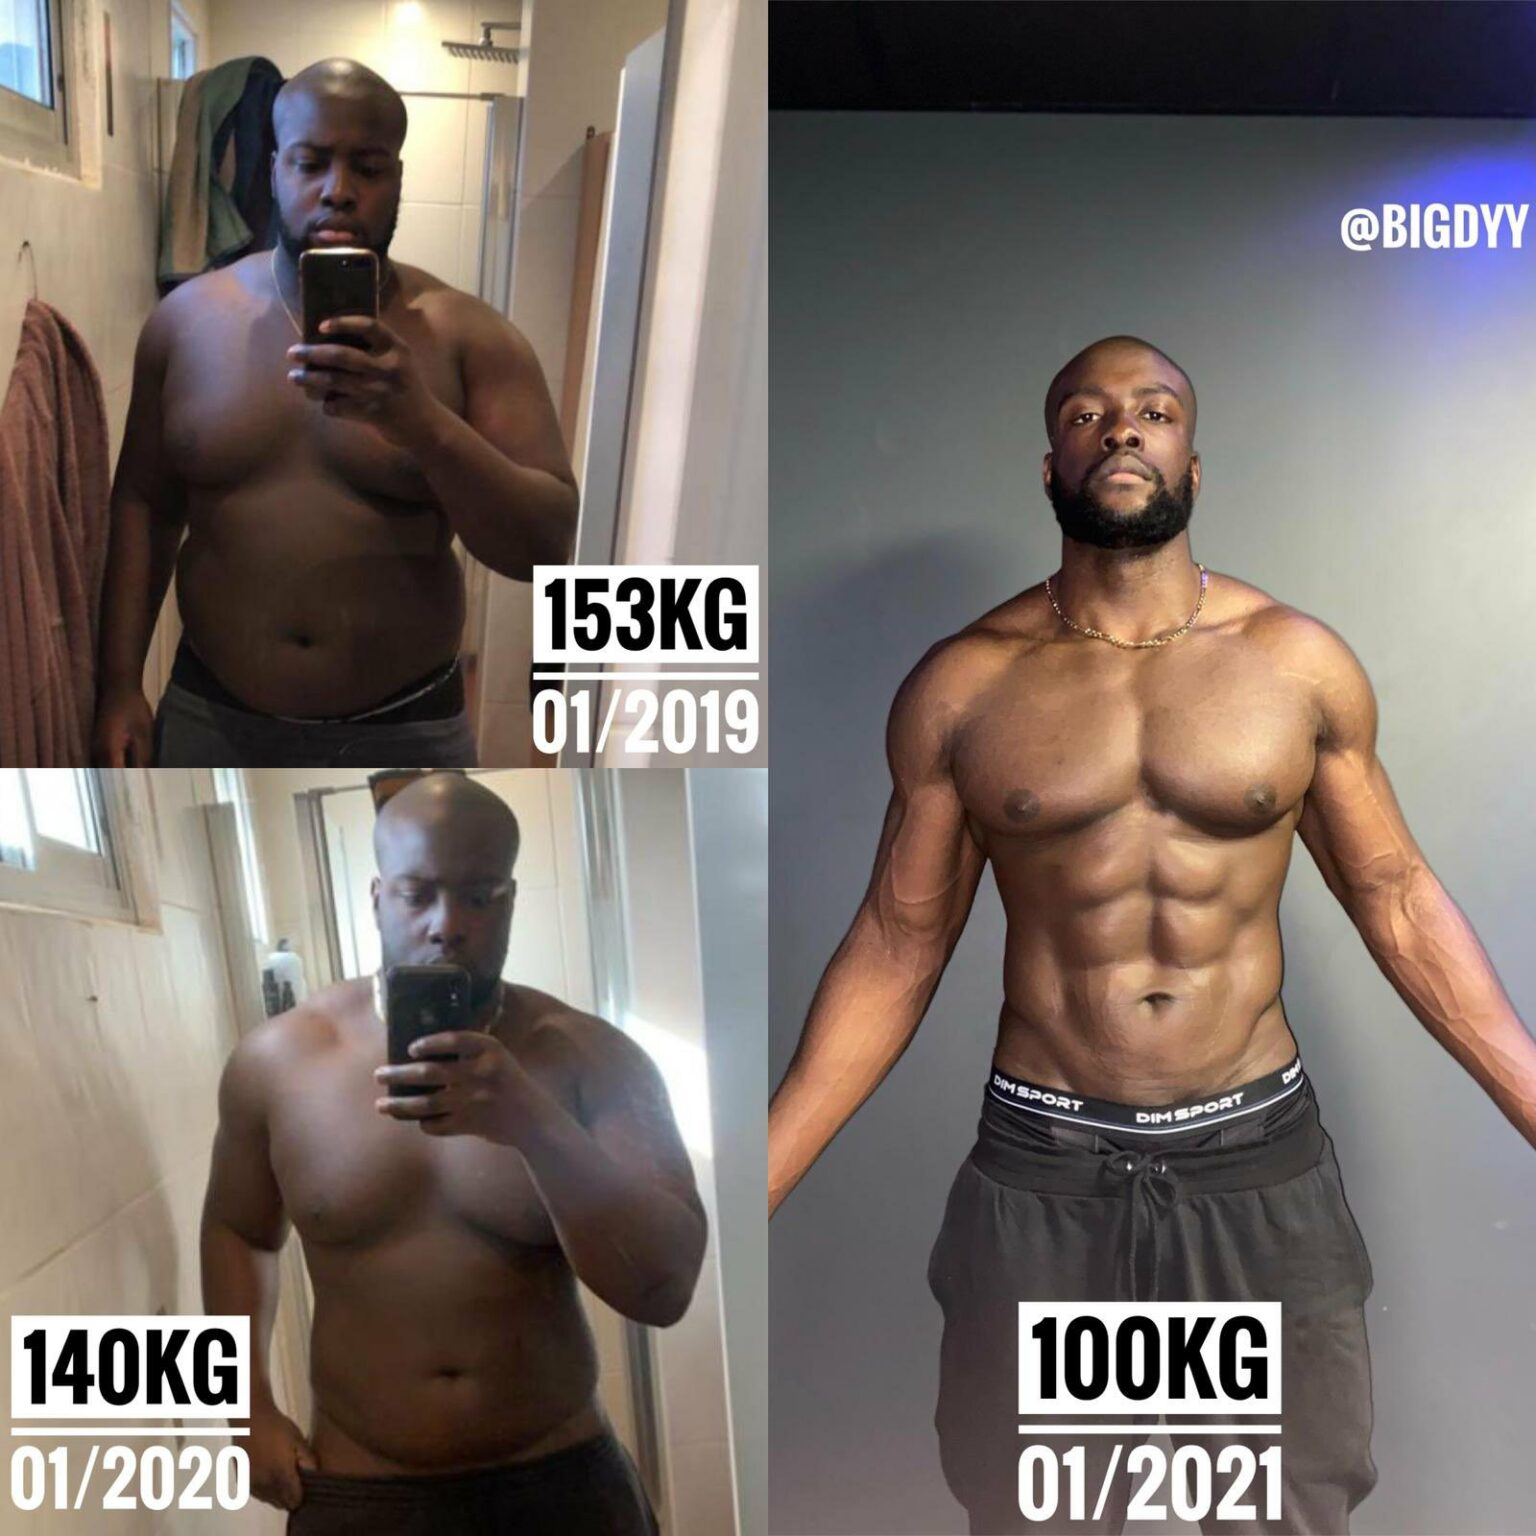 The man showed off his incredible body transformation on Twitter